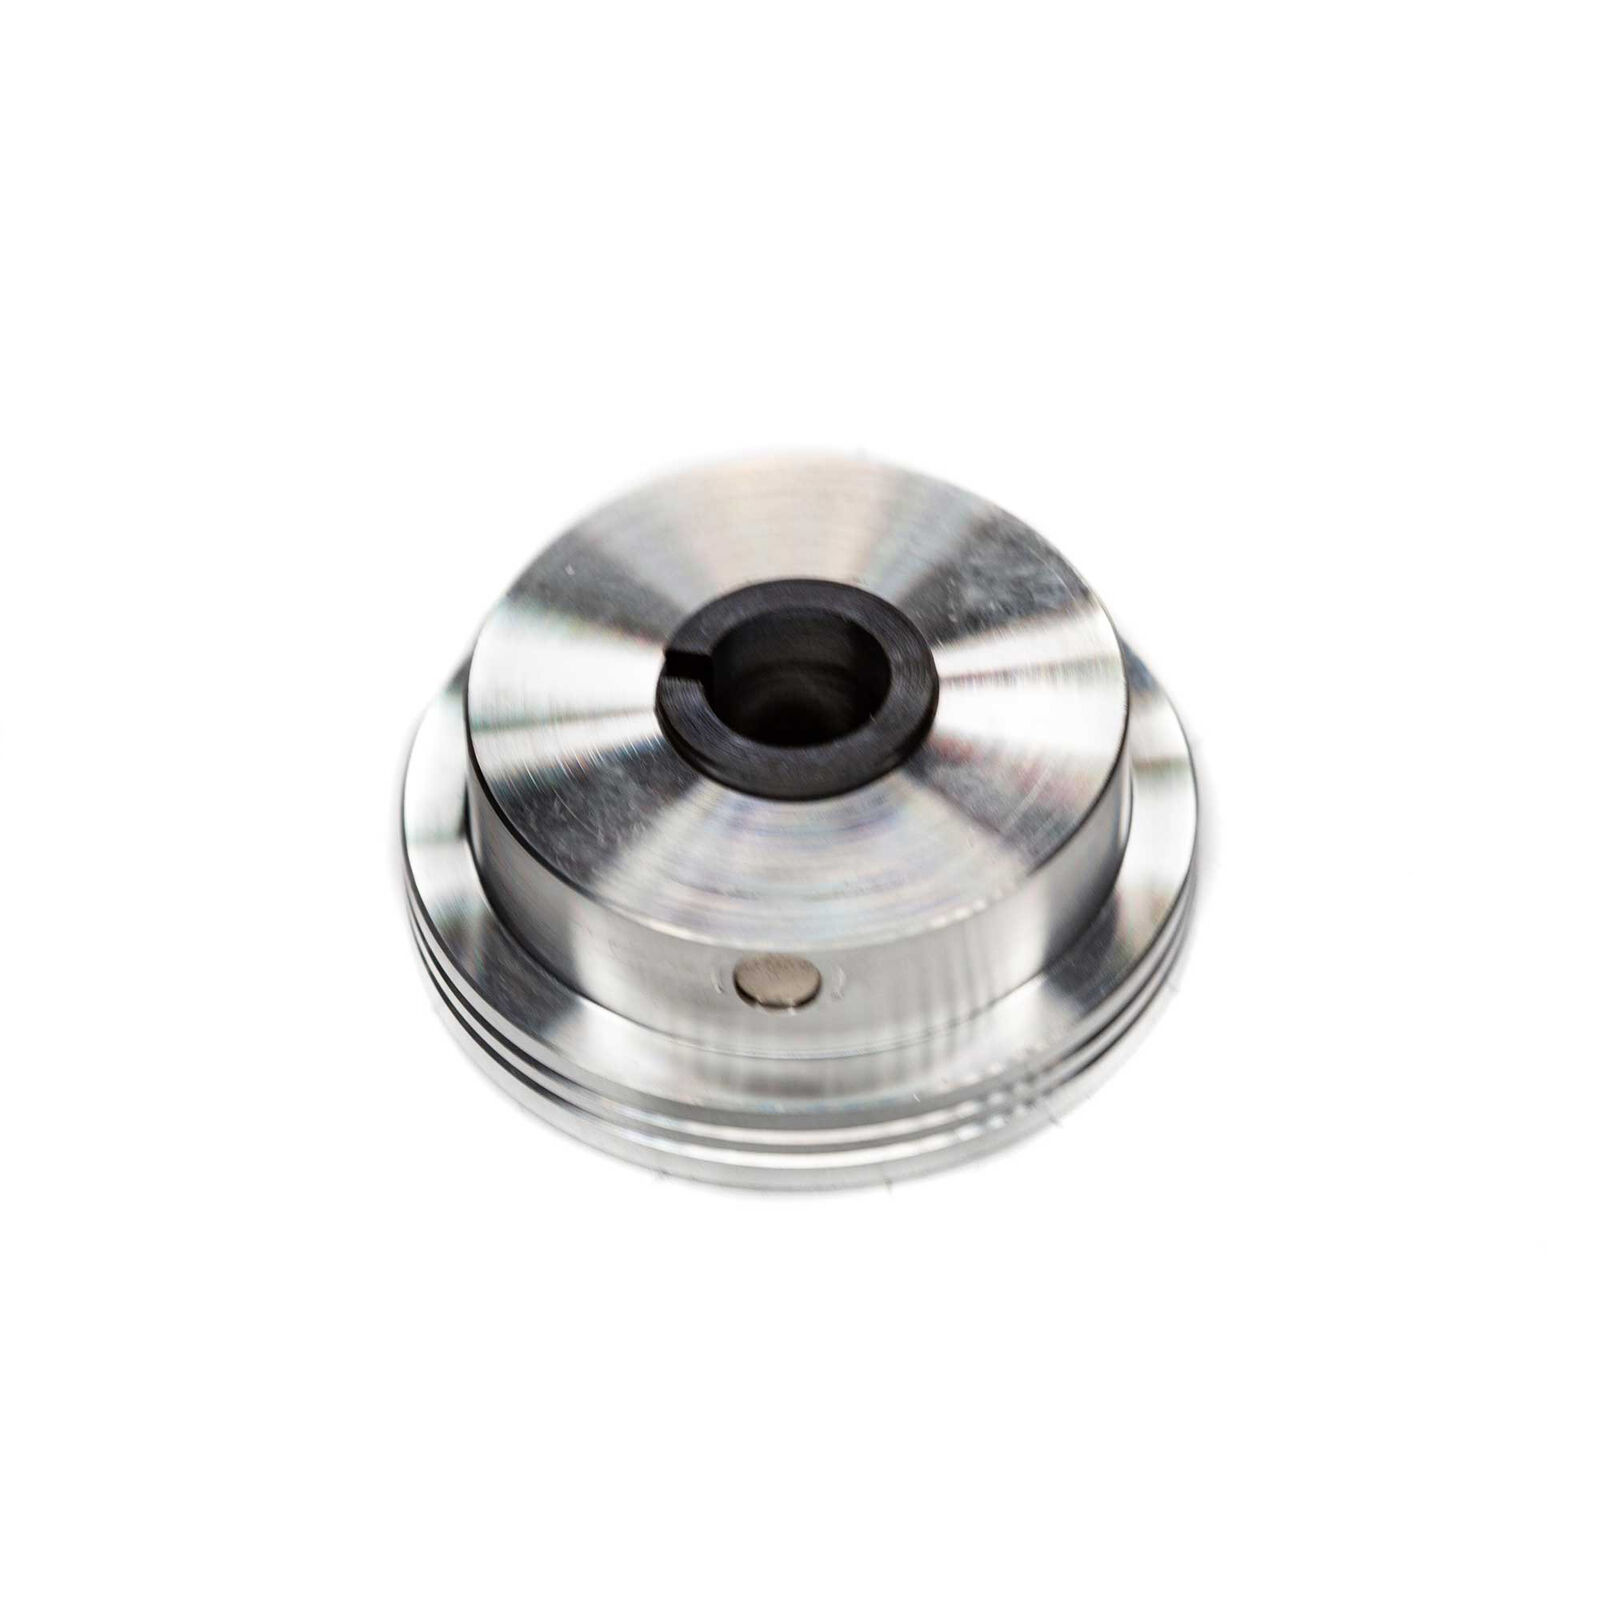 Taper Collet and Drive Flange: CC